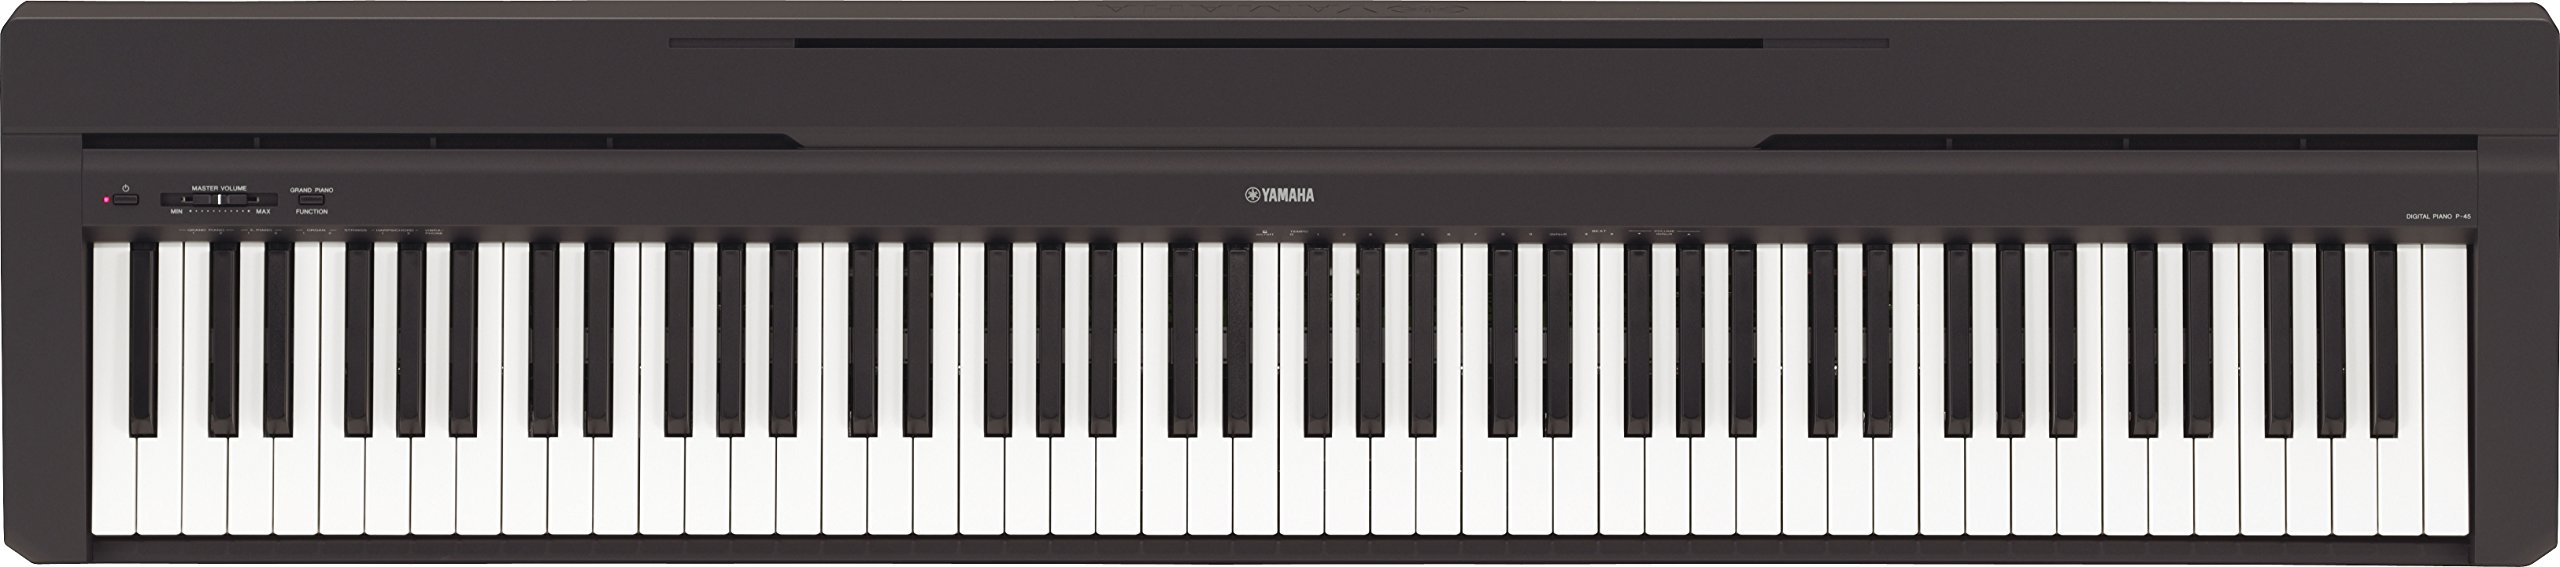 acoustic piano - Yamaha p45 review